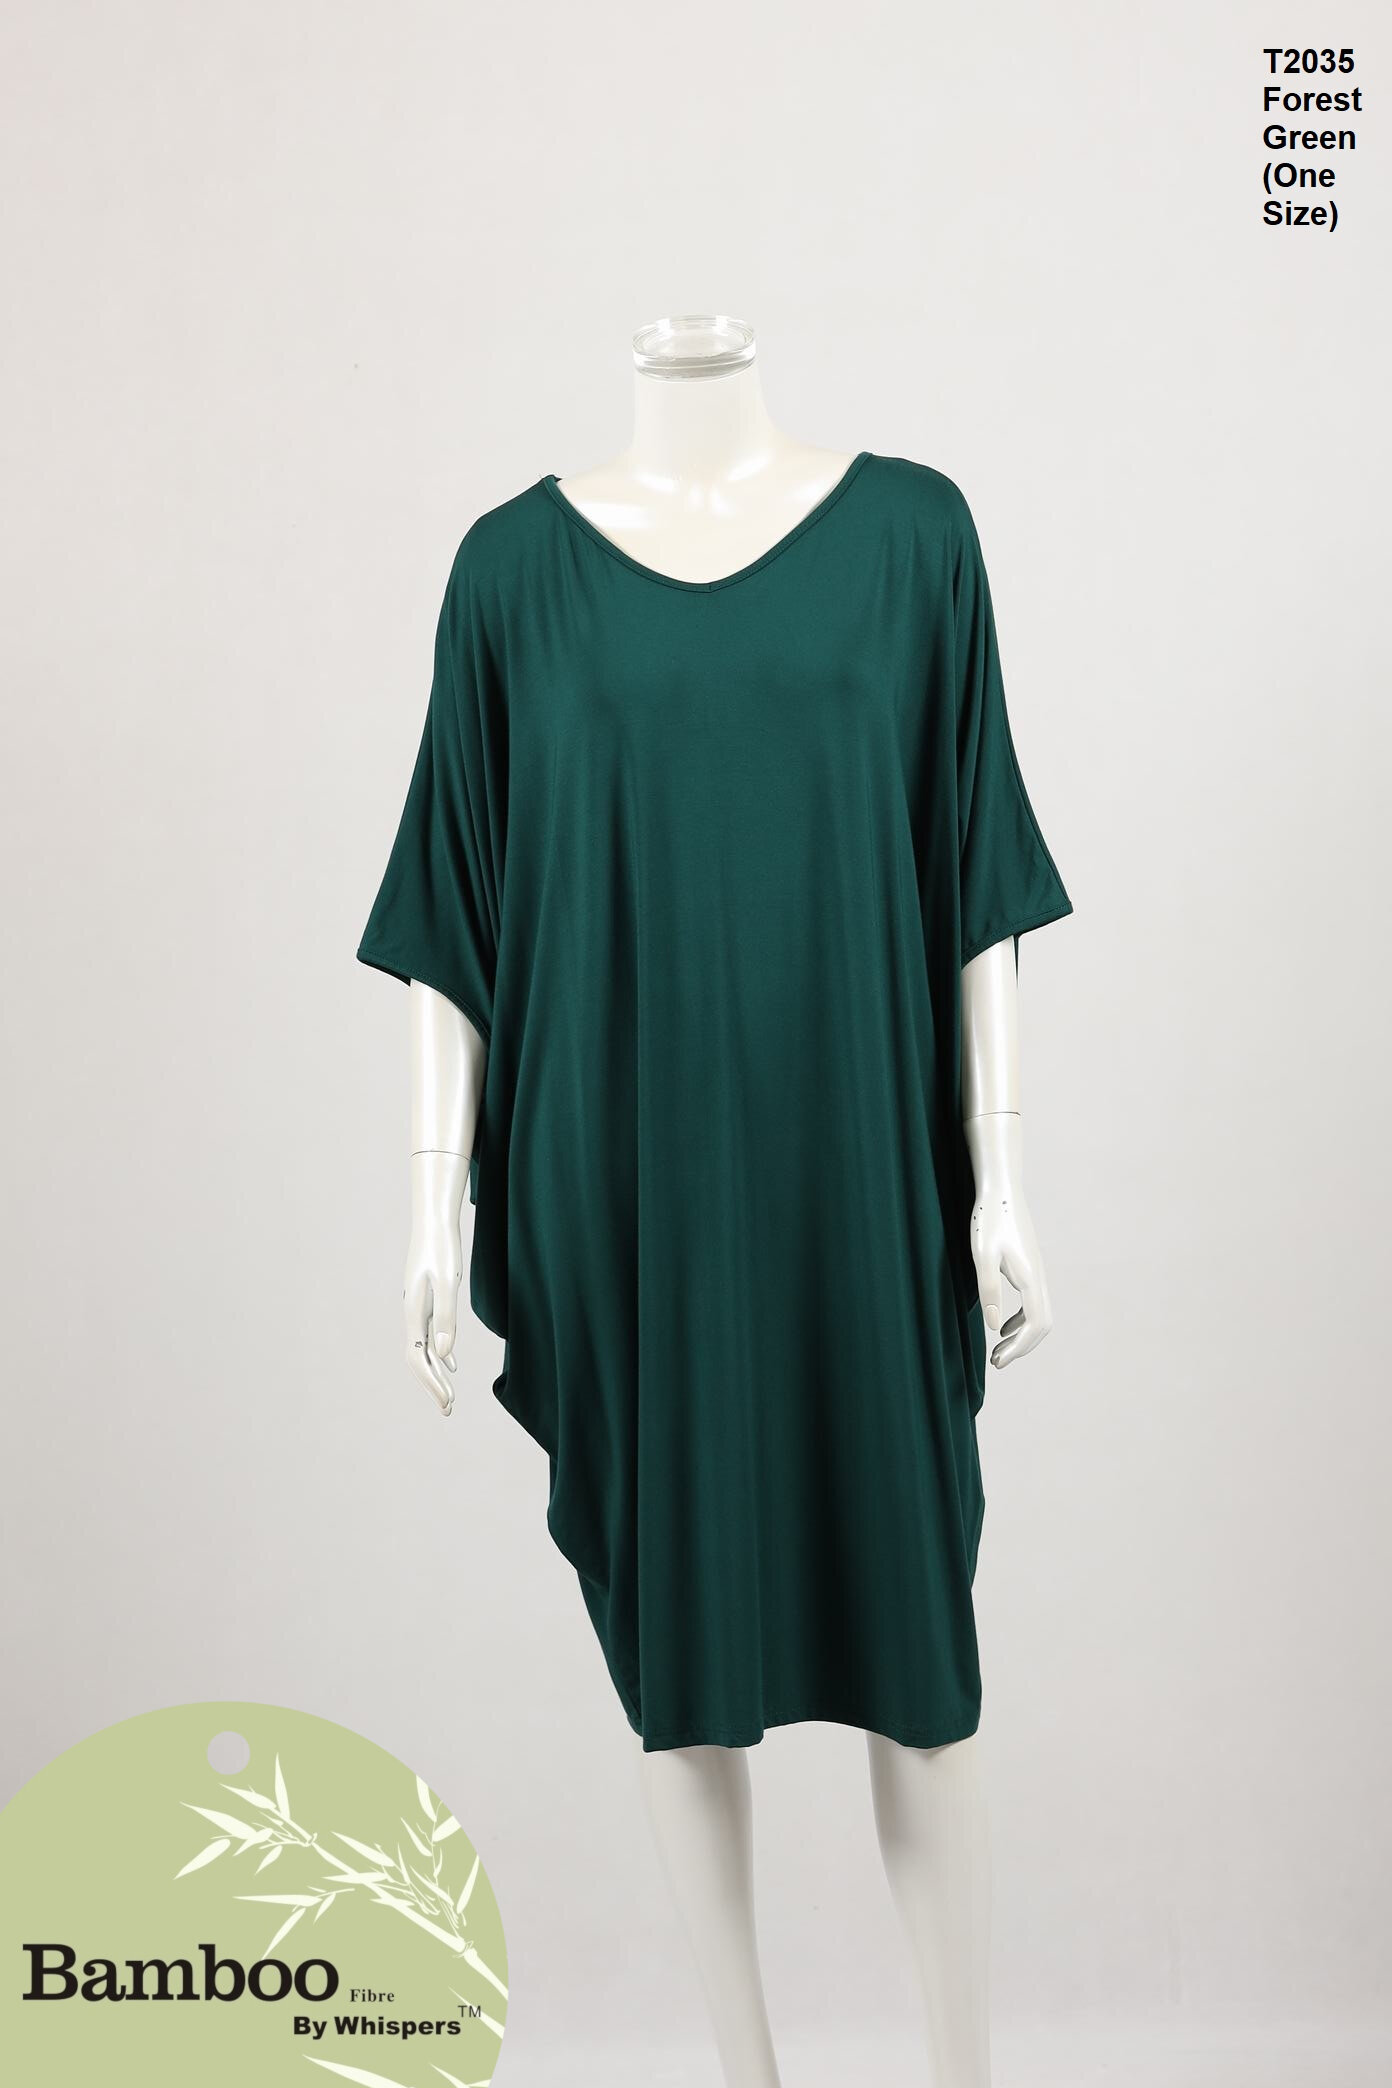 T2035-One Size-Forest Green.JPG